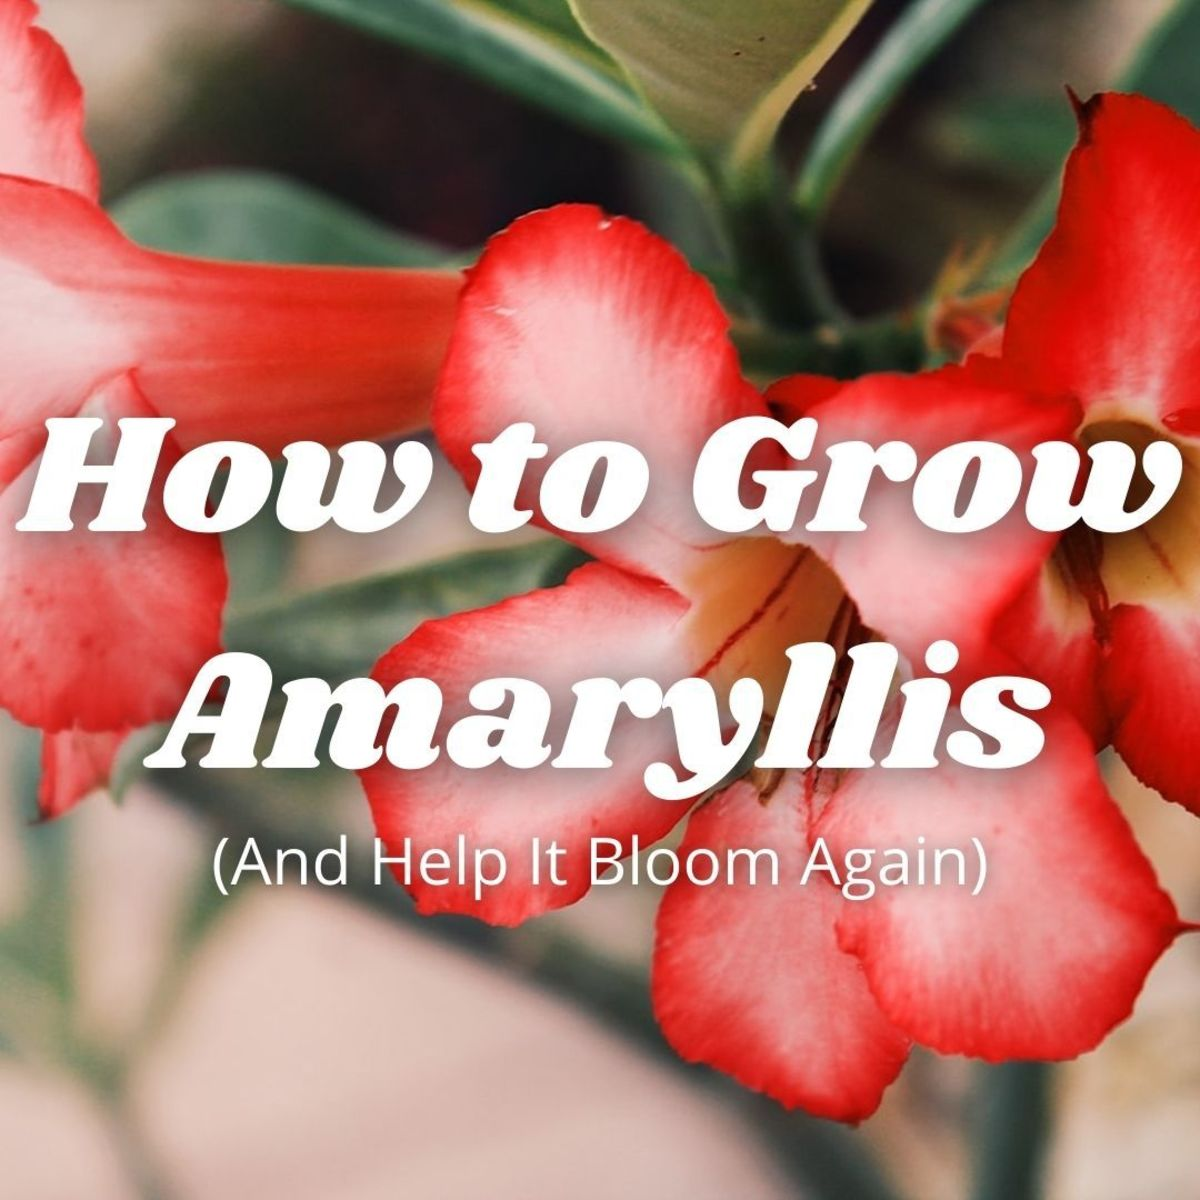 Amaryllis or Hippeastrum: How to Grow and Bloom Again